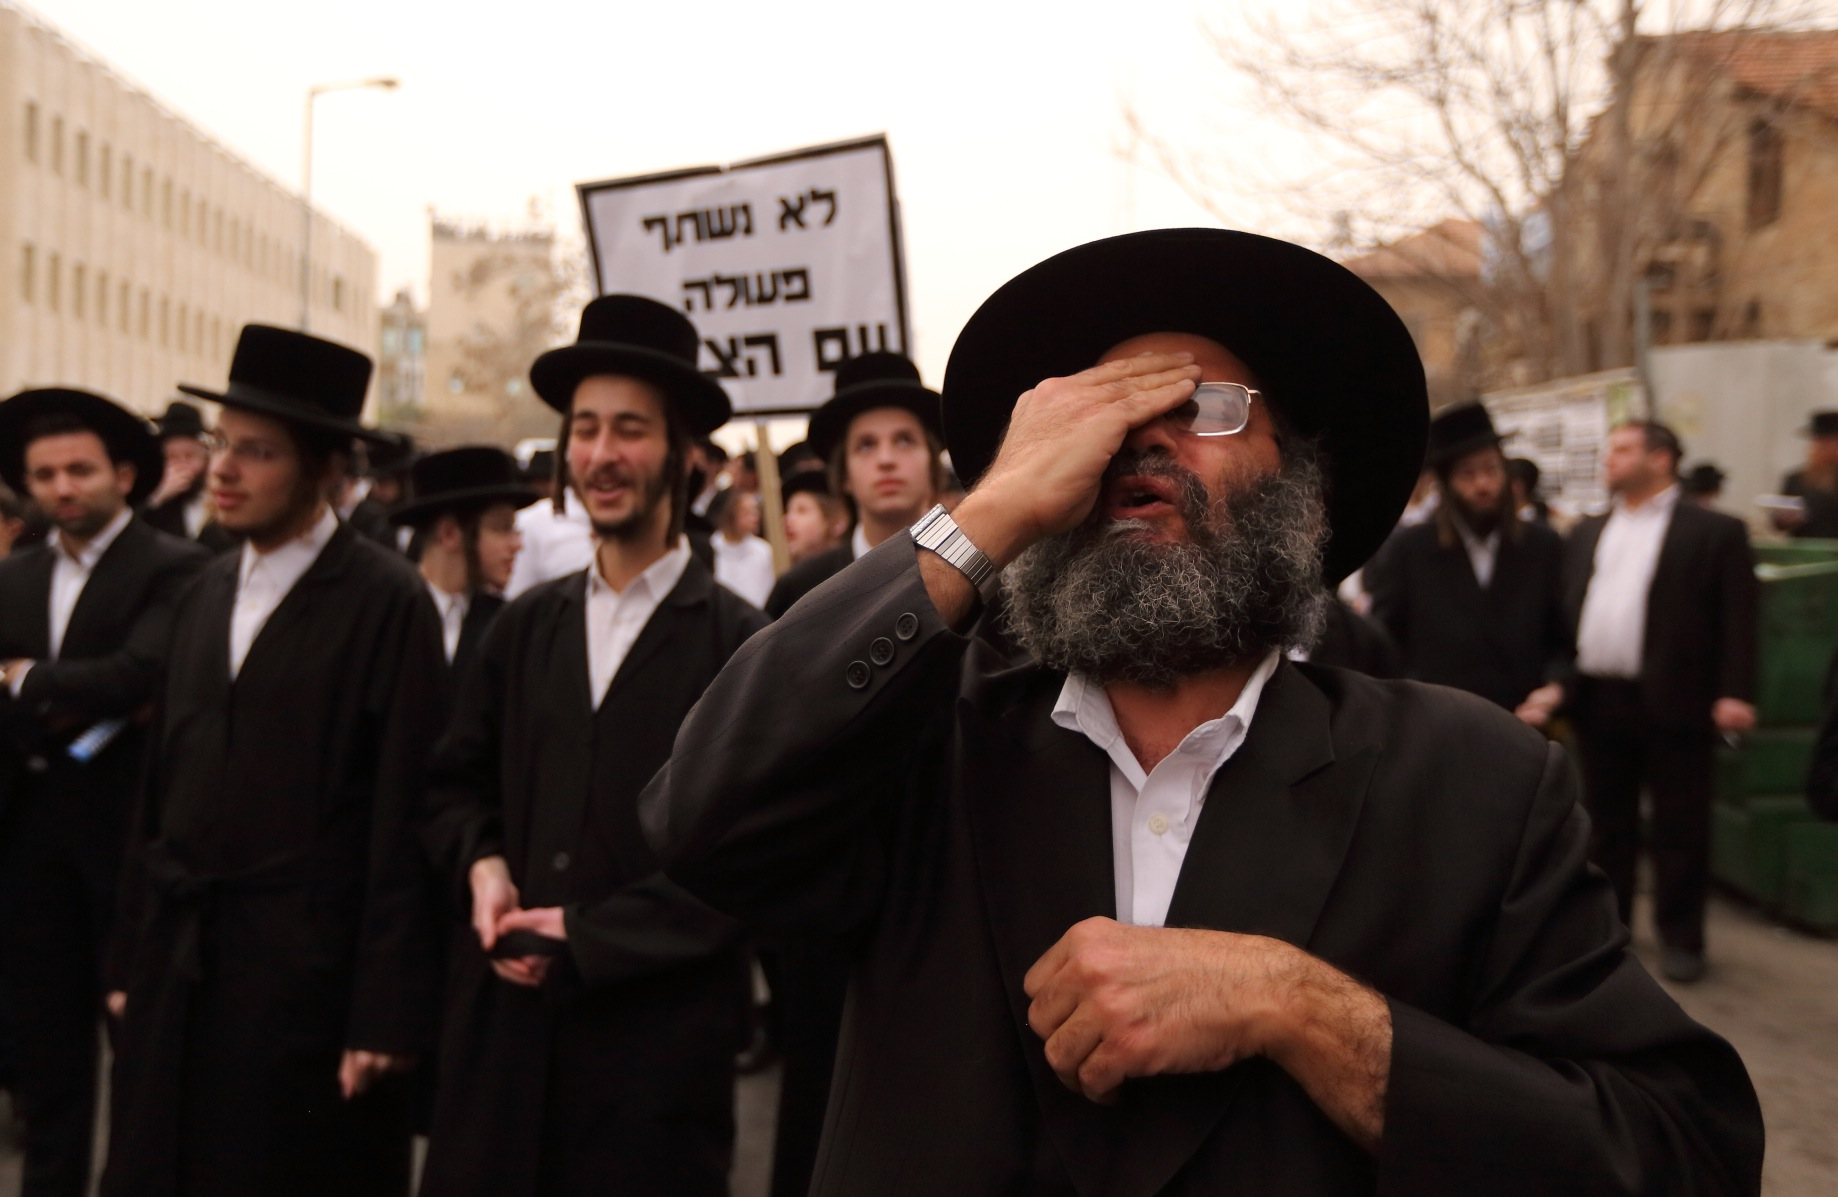 Haredi Jews In Israel